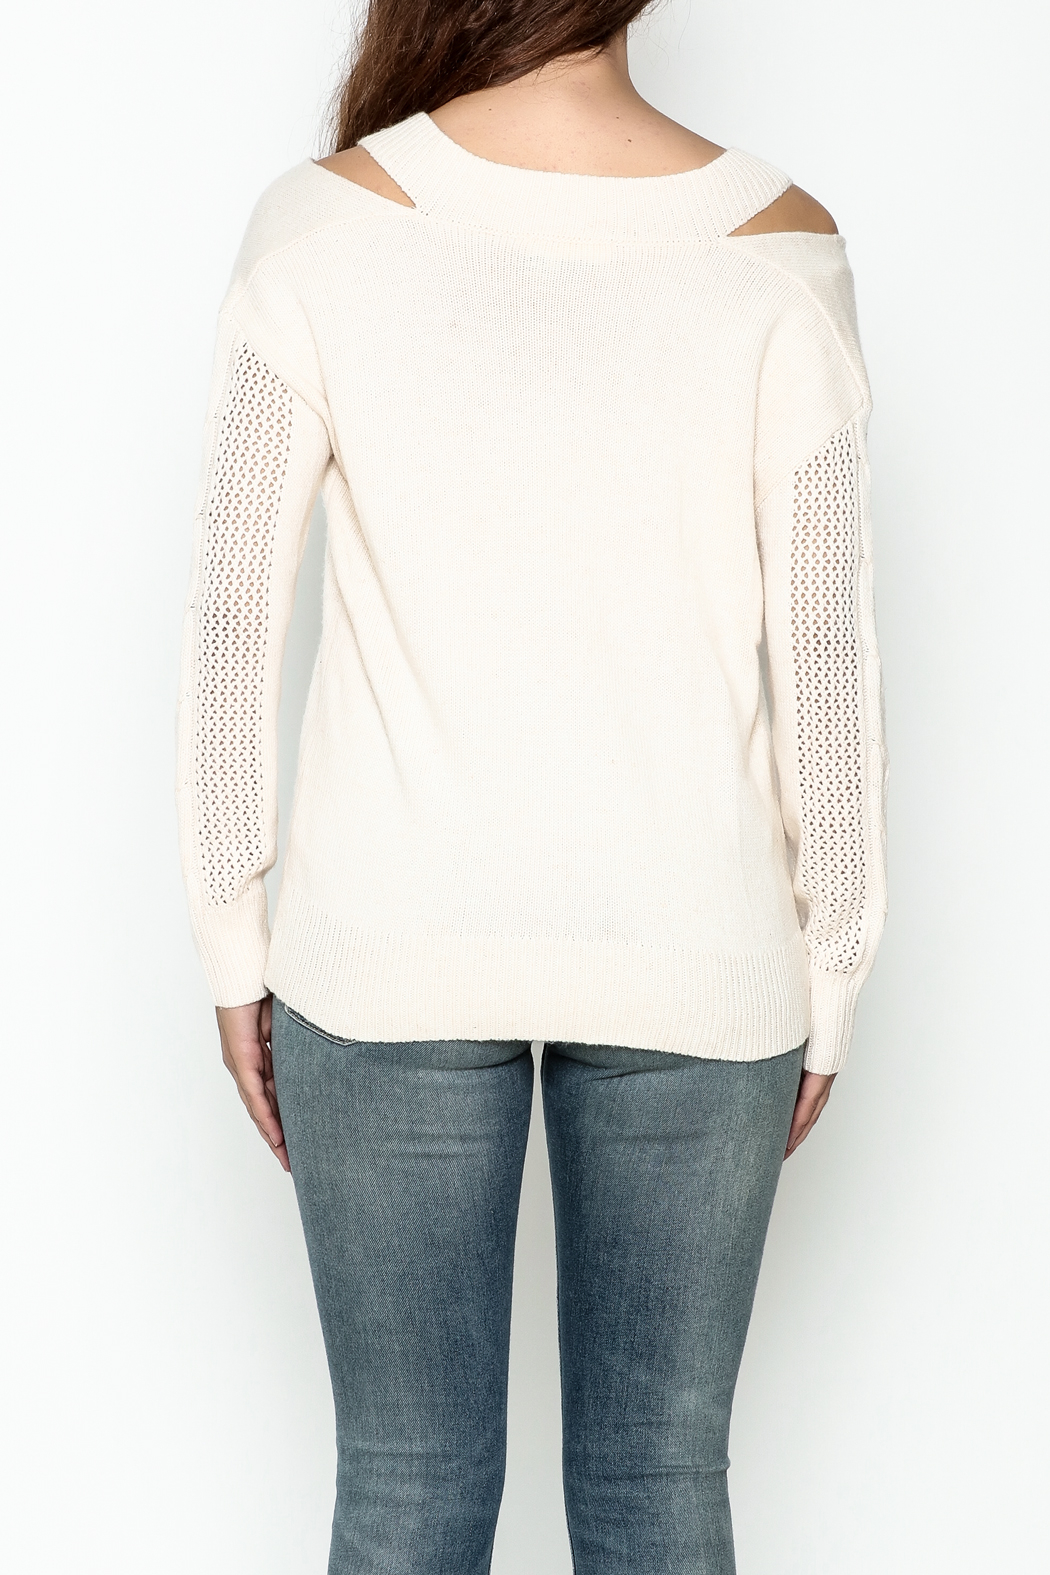 Fate Pullover V Neck Sweater - Back Cropped Image